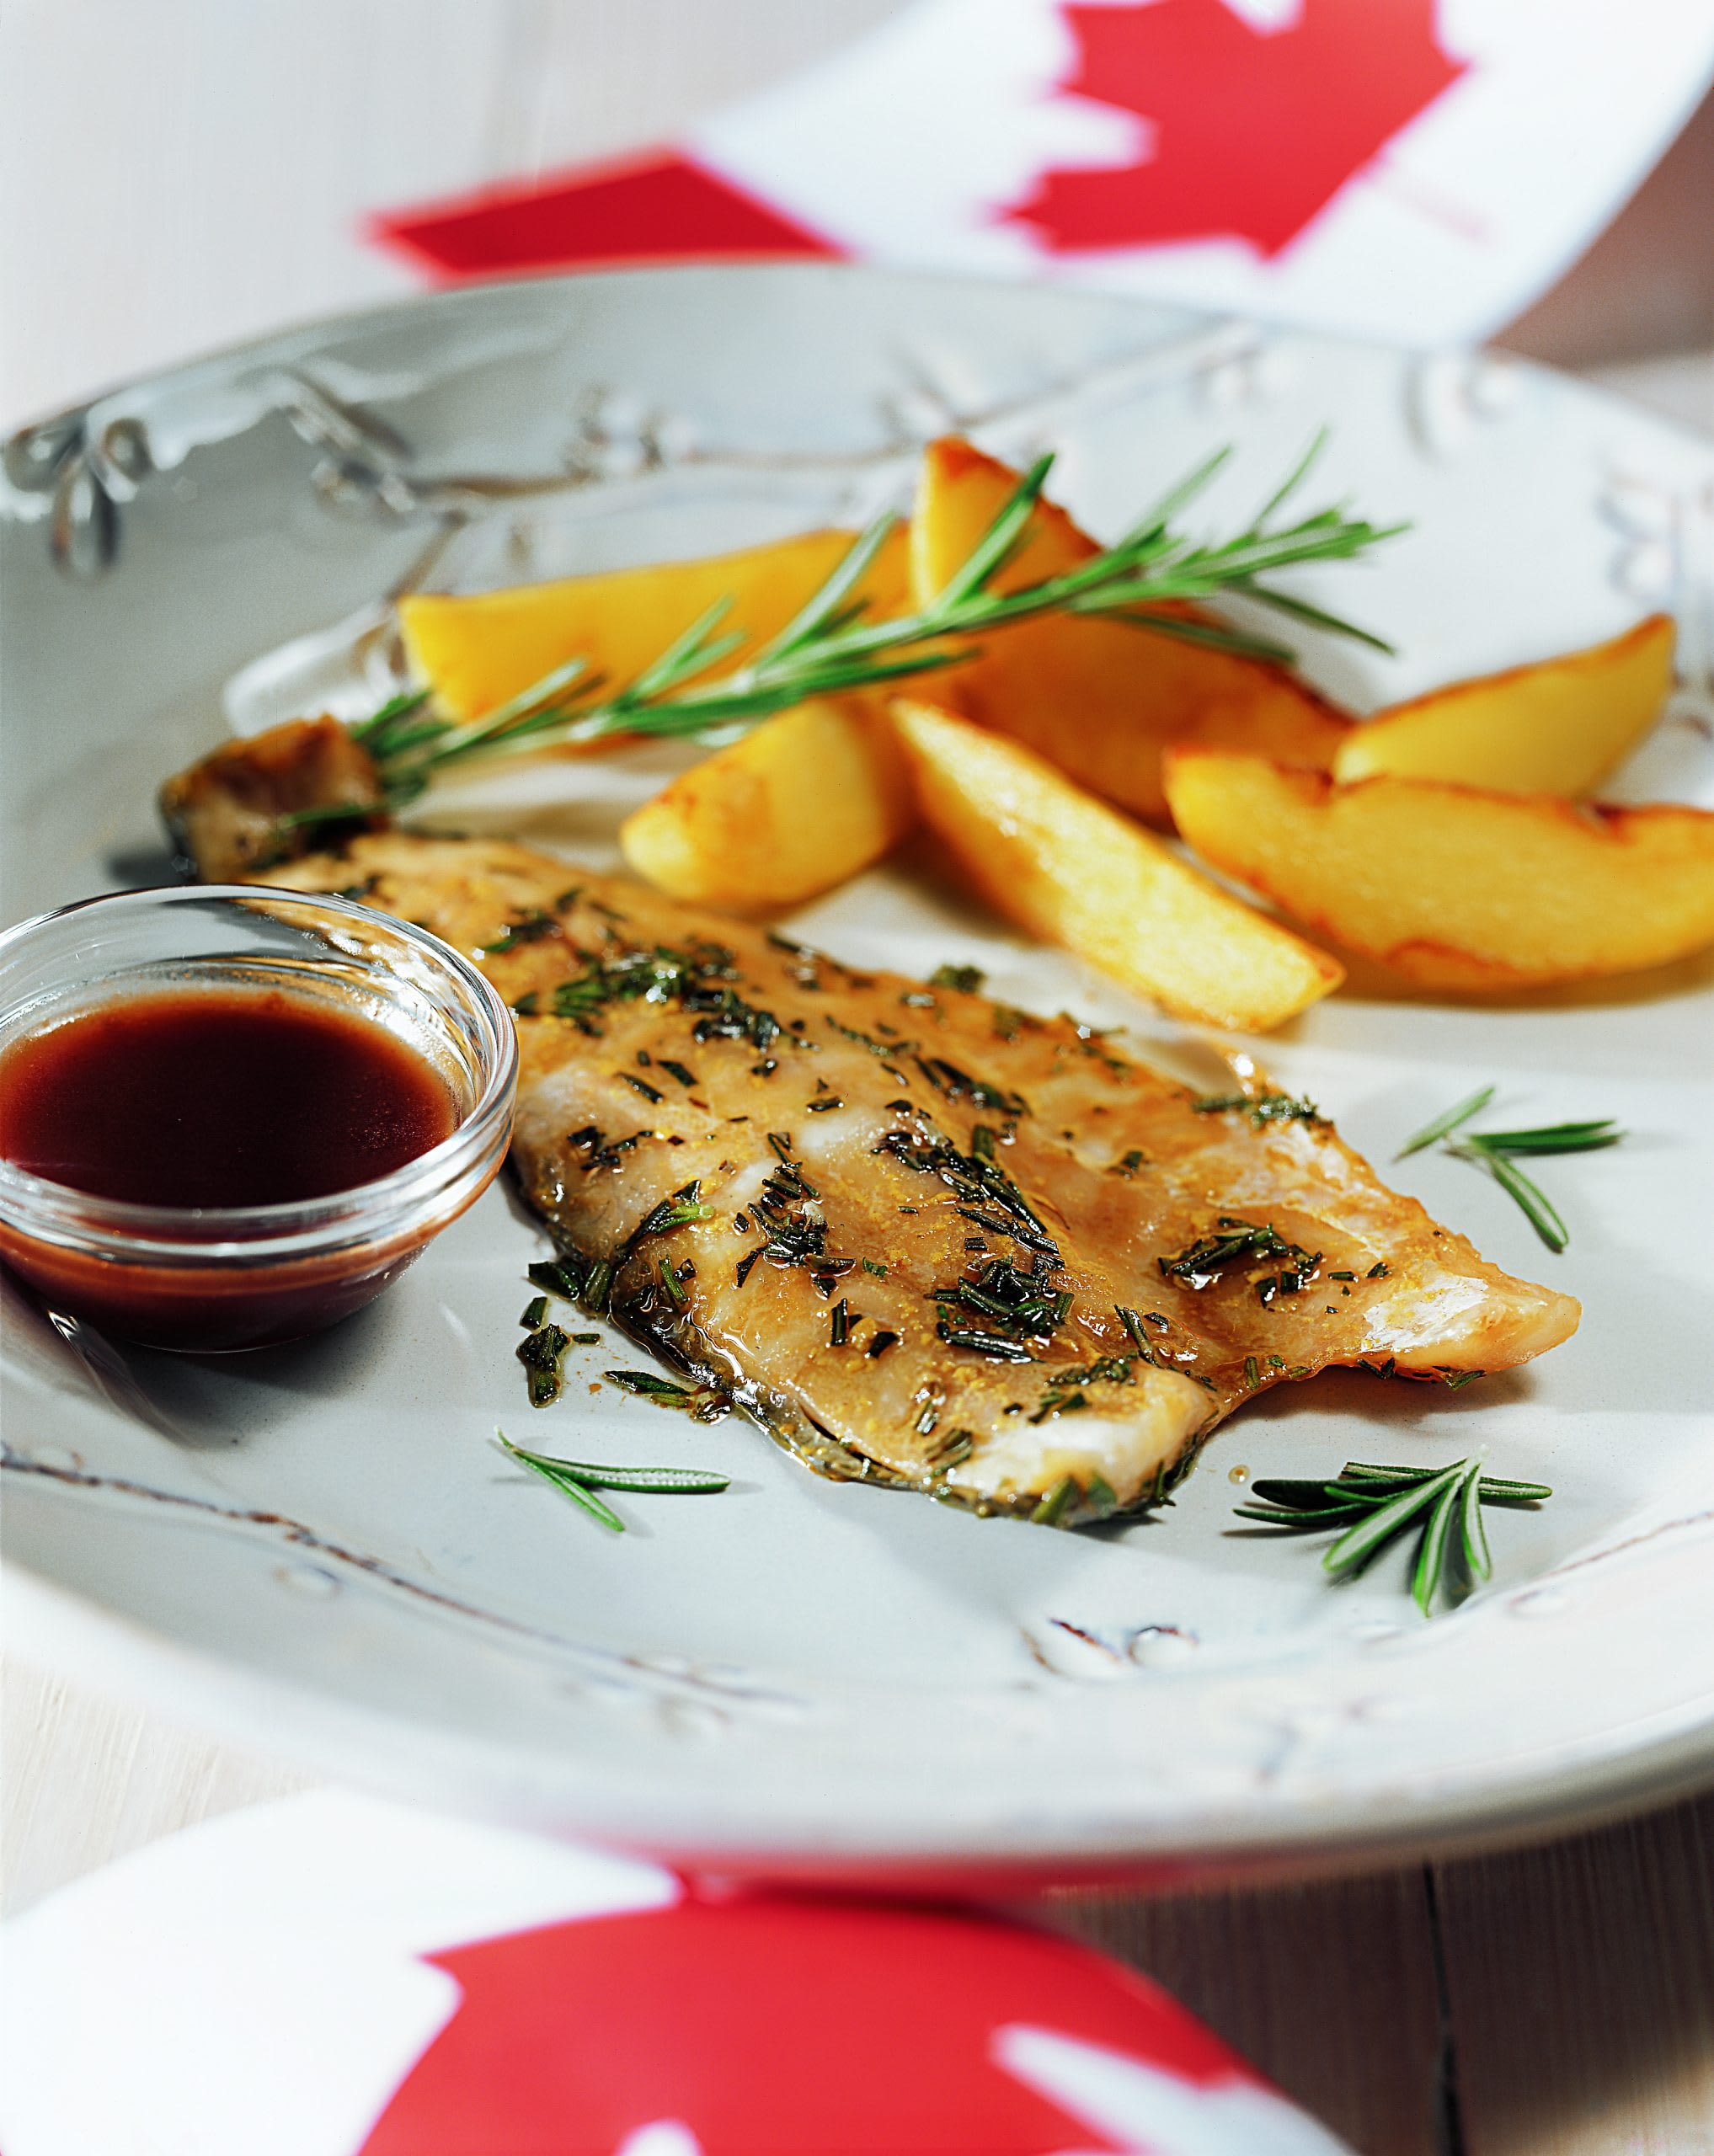 Fish with Red Wine Sauce (Fisch mit Rotweinsauce)